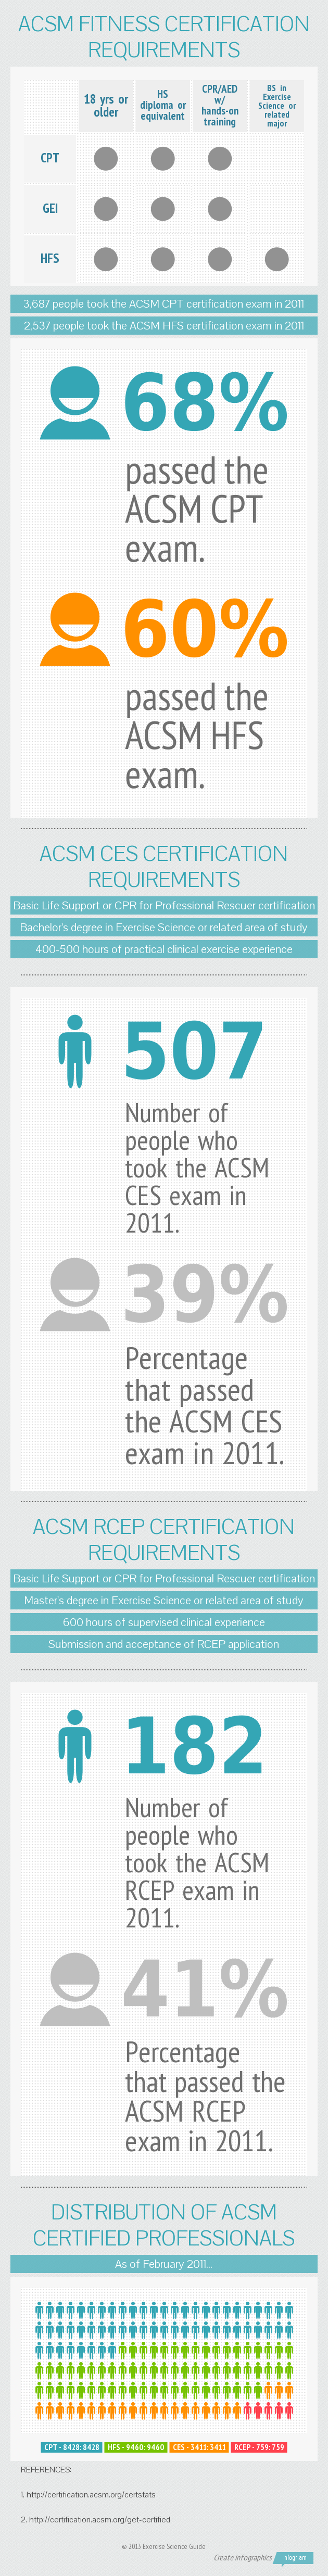 Infographic showing ACSM cert requirements and exam stats.